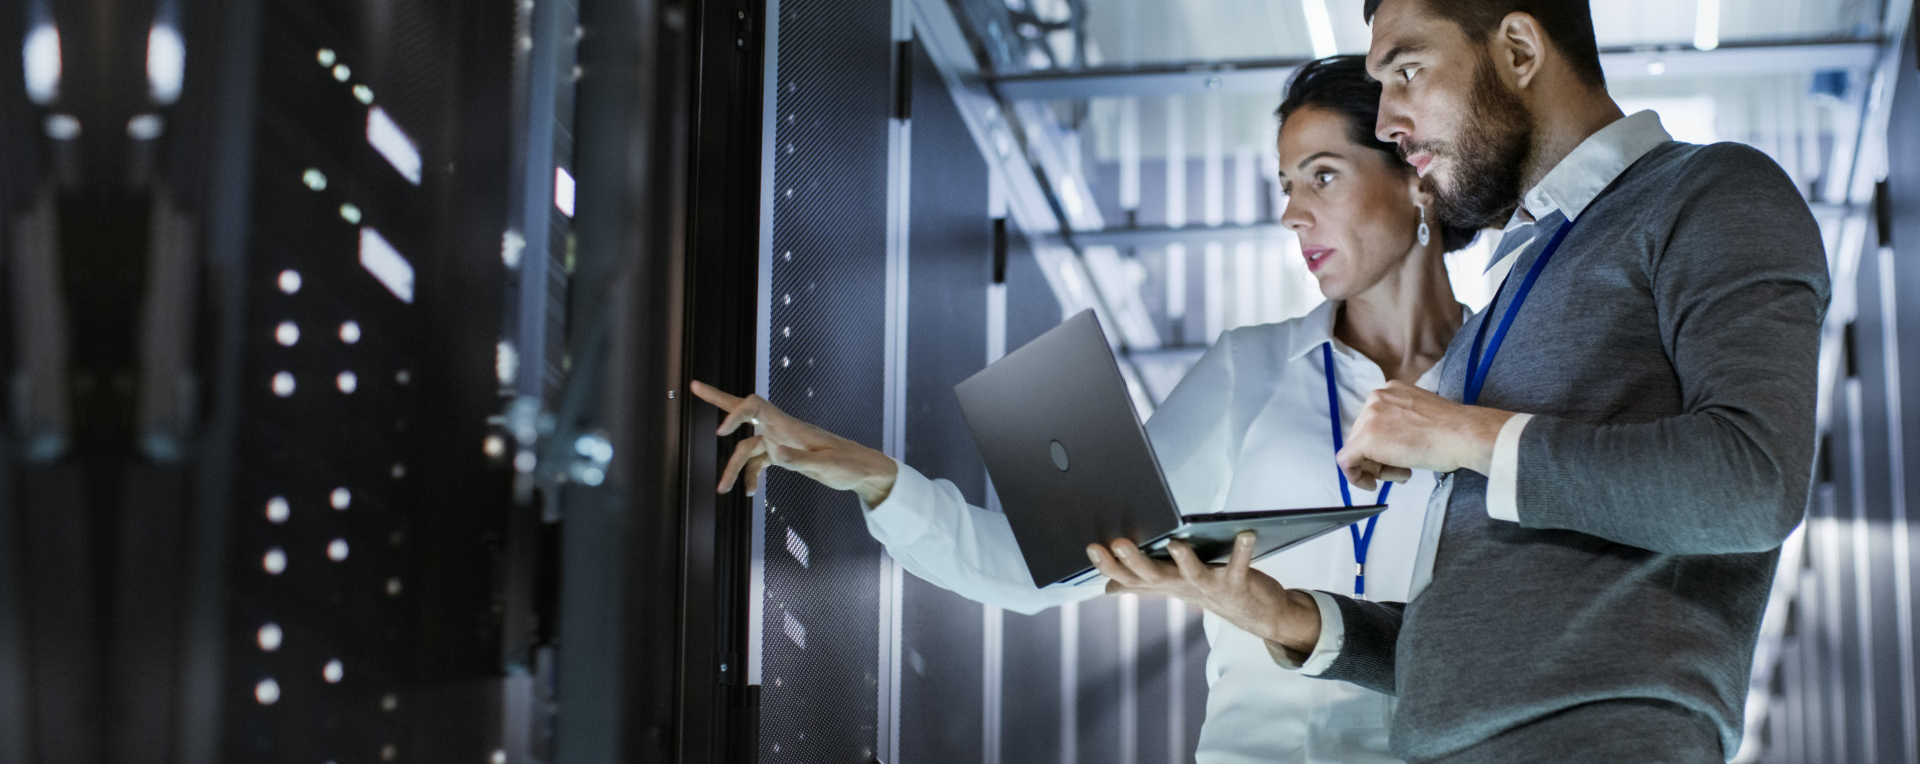 Male IT Specialist Holds Laptop and Discusses Work with Female Server Technician